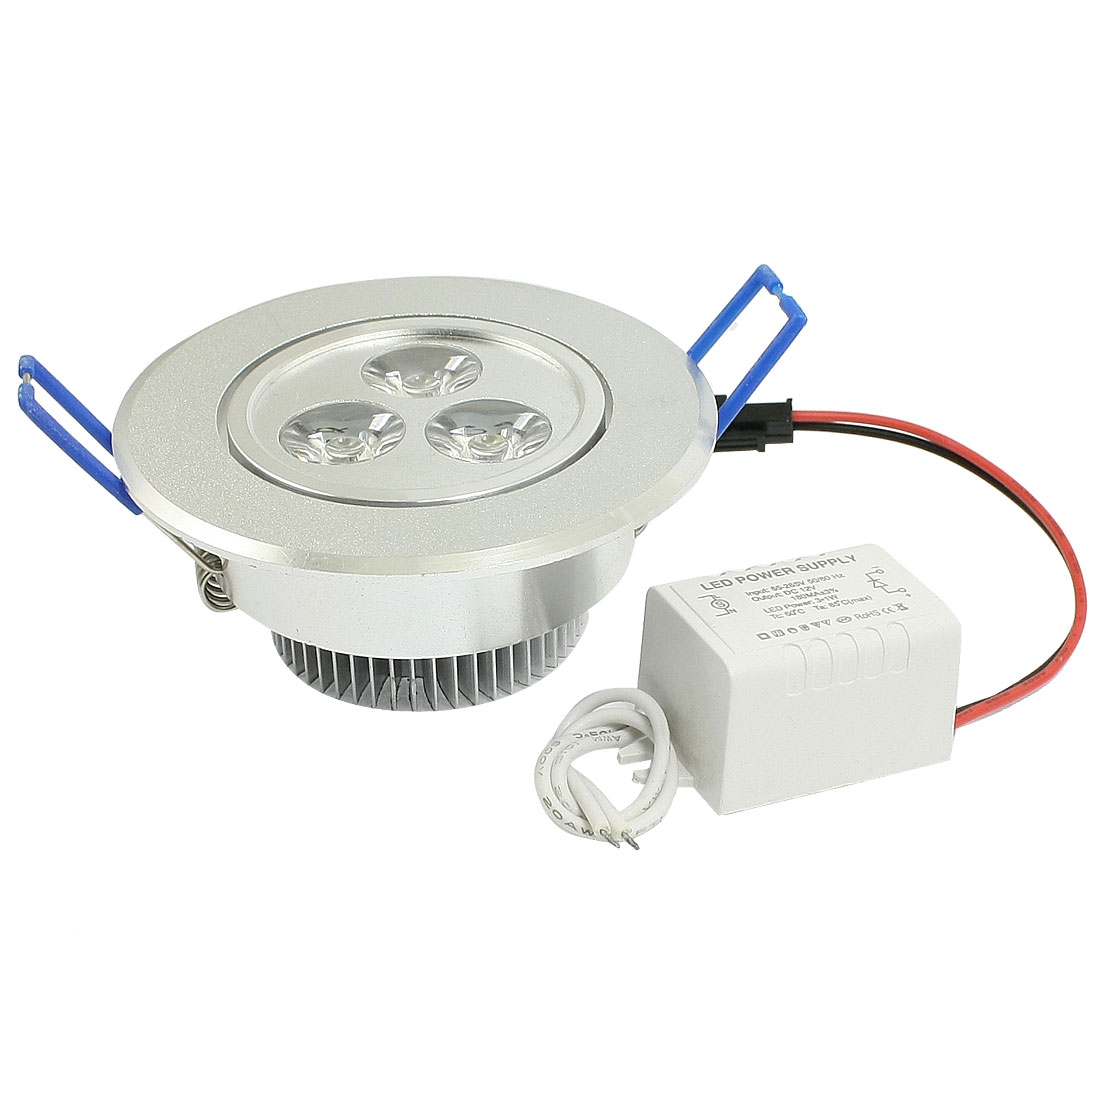 DC 12V Car Auto Warm White 3x1W LED Light Dome Ceiling Lamp